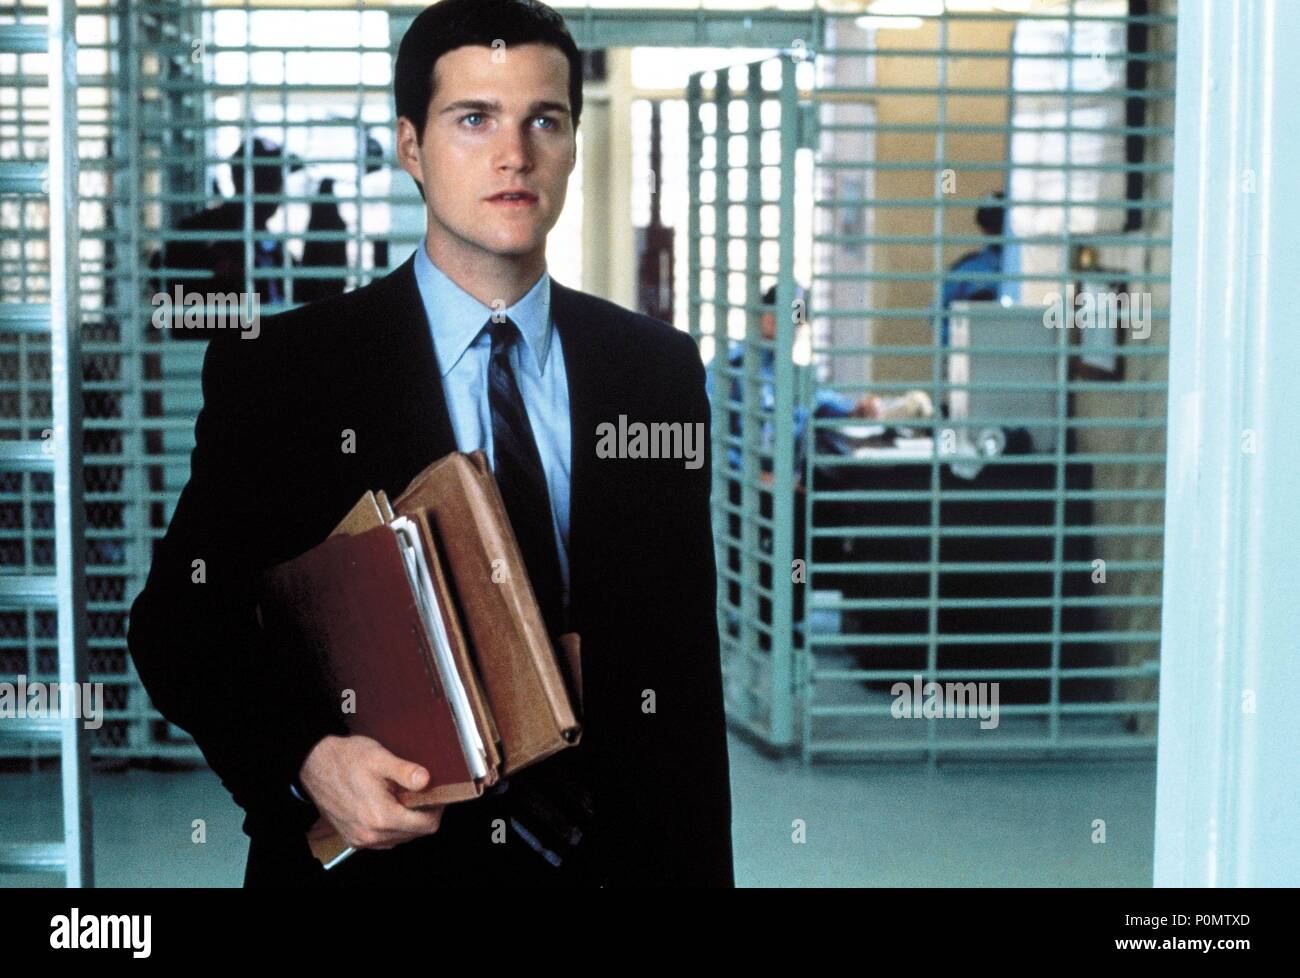 Original Film Title: THE CHAMBER.  English Title: THE CHAMBER.  Film Director: JAMES FOLEY.  Year: 1996.  Stars: CHRIS O'DONNELL. Credit: COLUMBIA TRI STAR / DUHAMEL, FRANÇOIS / Album - Stock Image